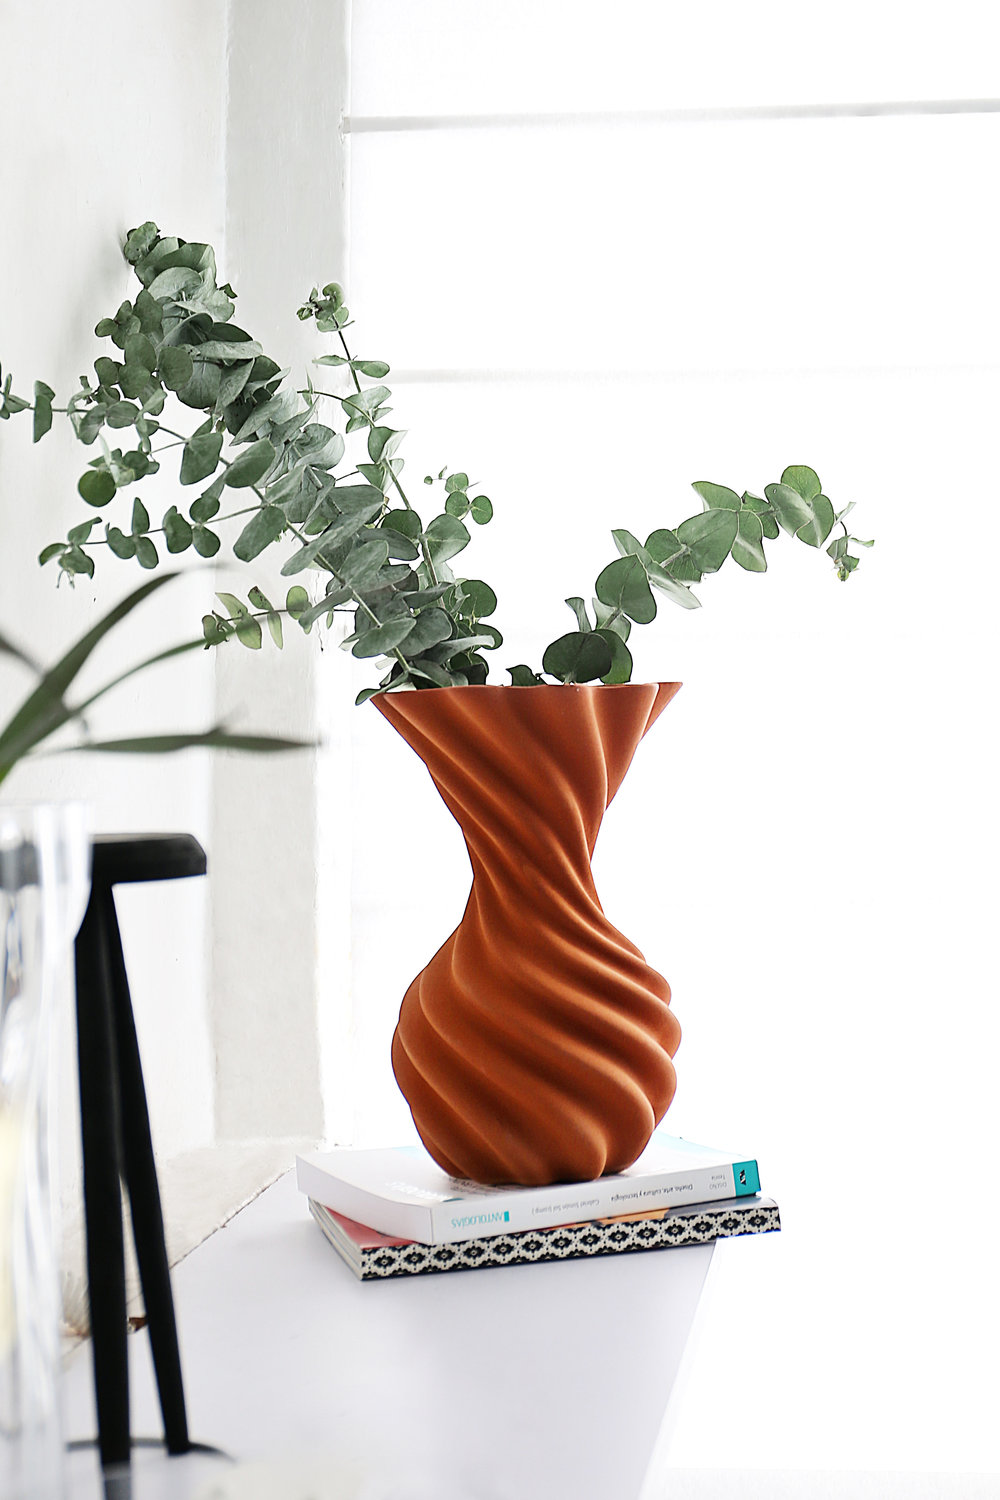 Miss Jolie  is a decorative vase that pauses movement. Like a cloth, with folds that reveal an ironic static dynamism.